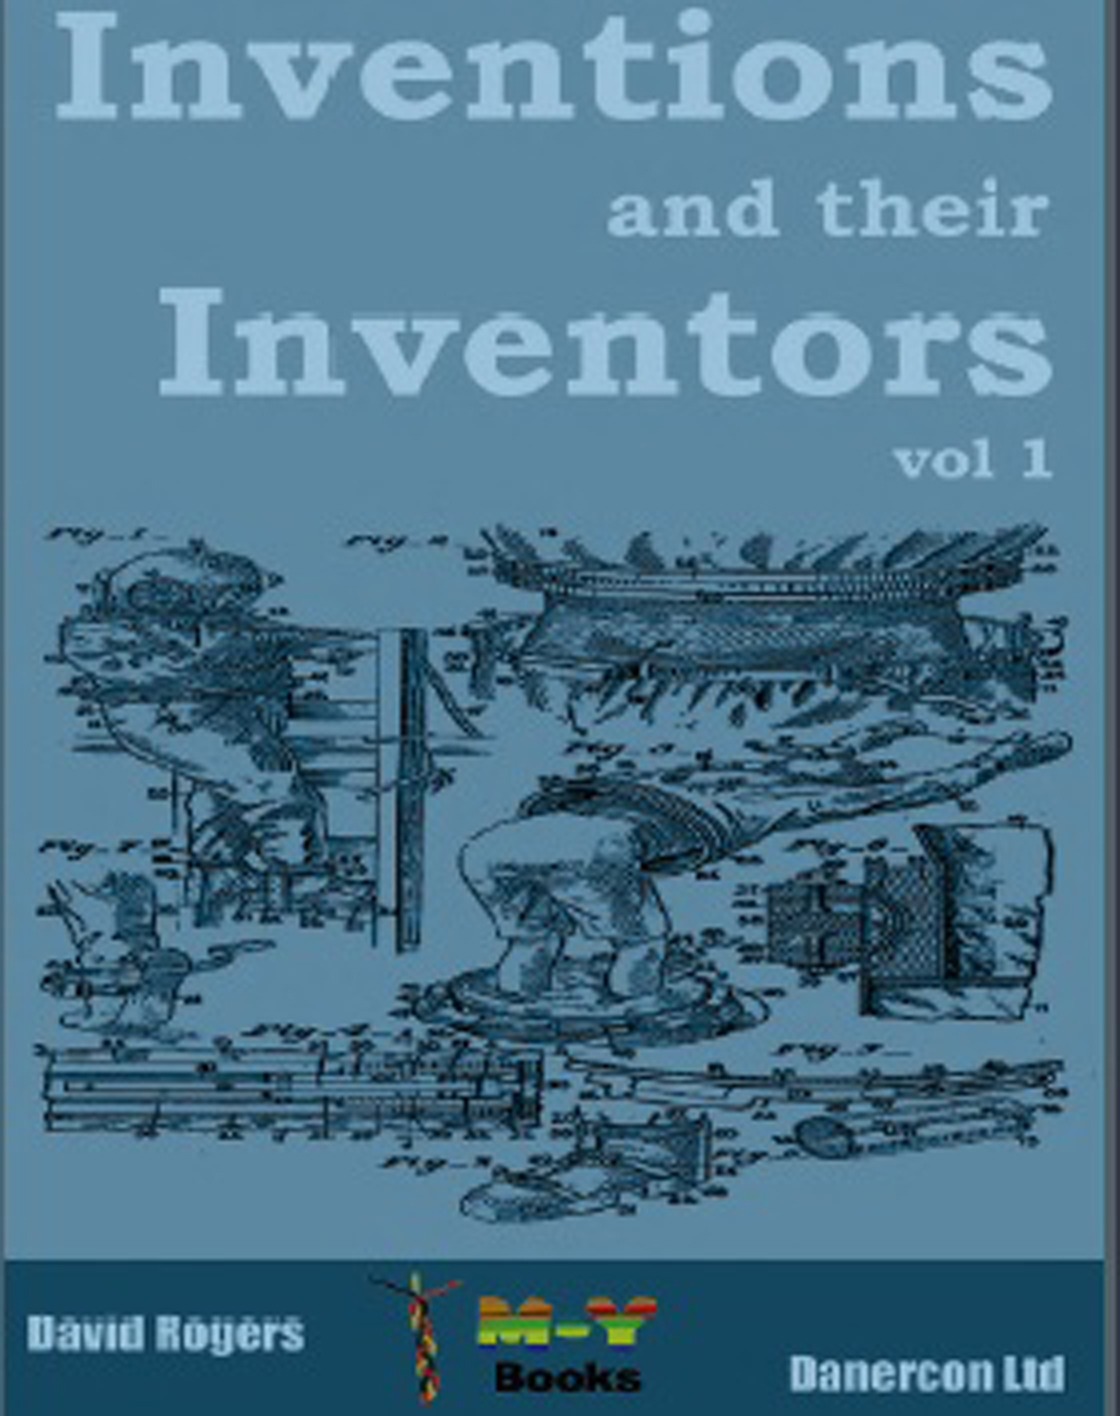 Inventions and their inventors 1750-1920 By: Dave Rogers